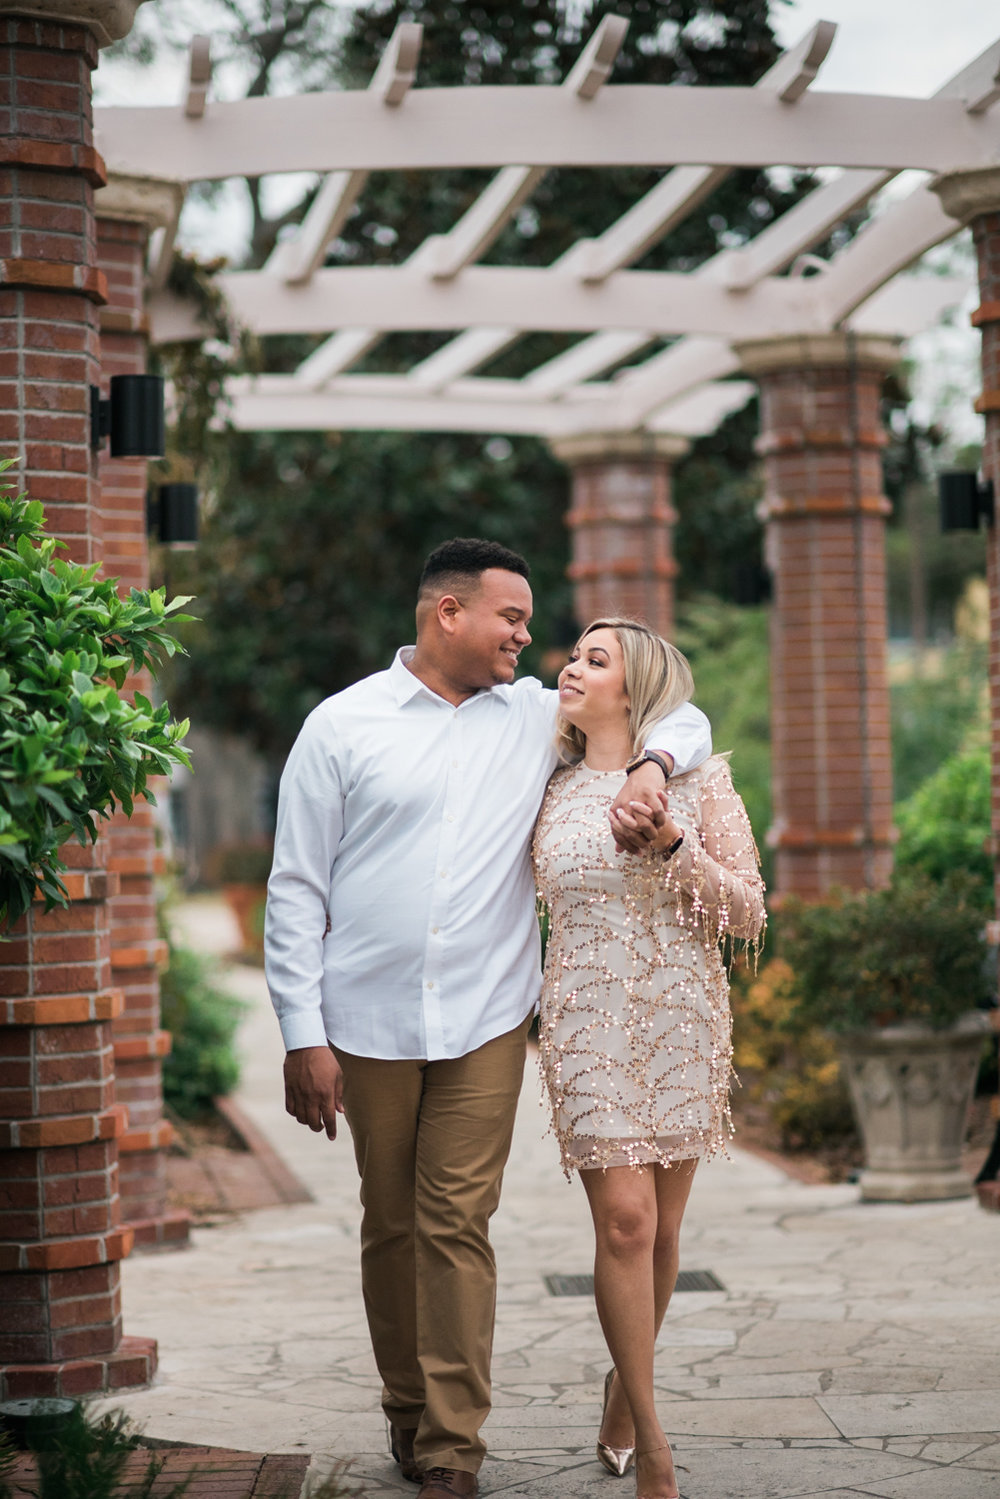 winter park engagement photographer-6.jpg